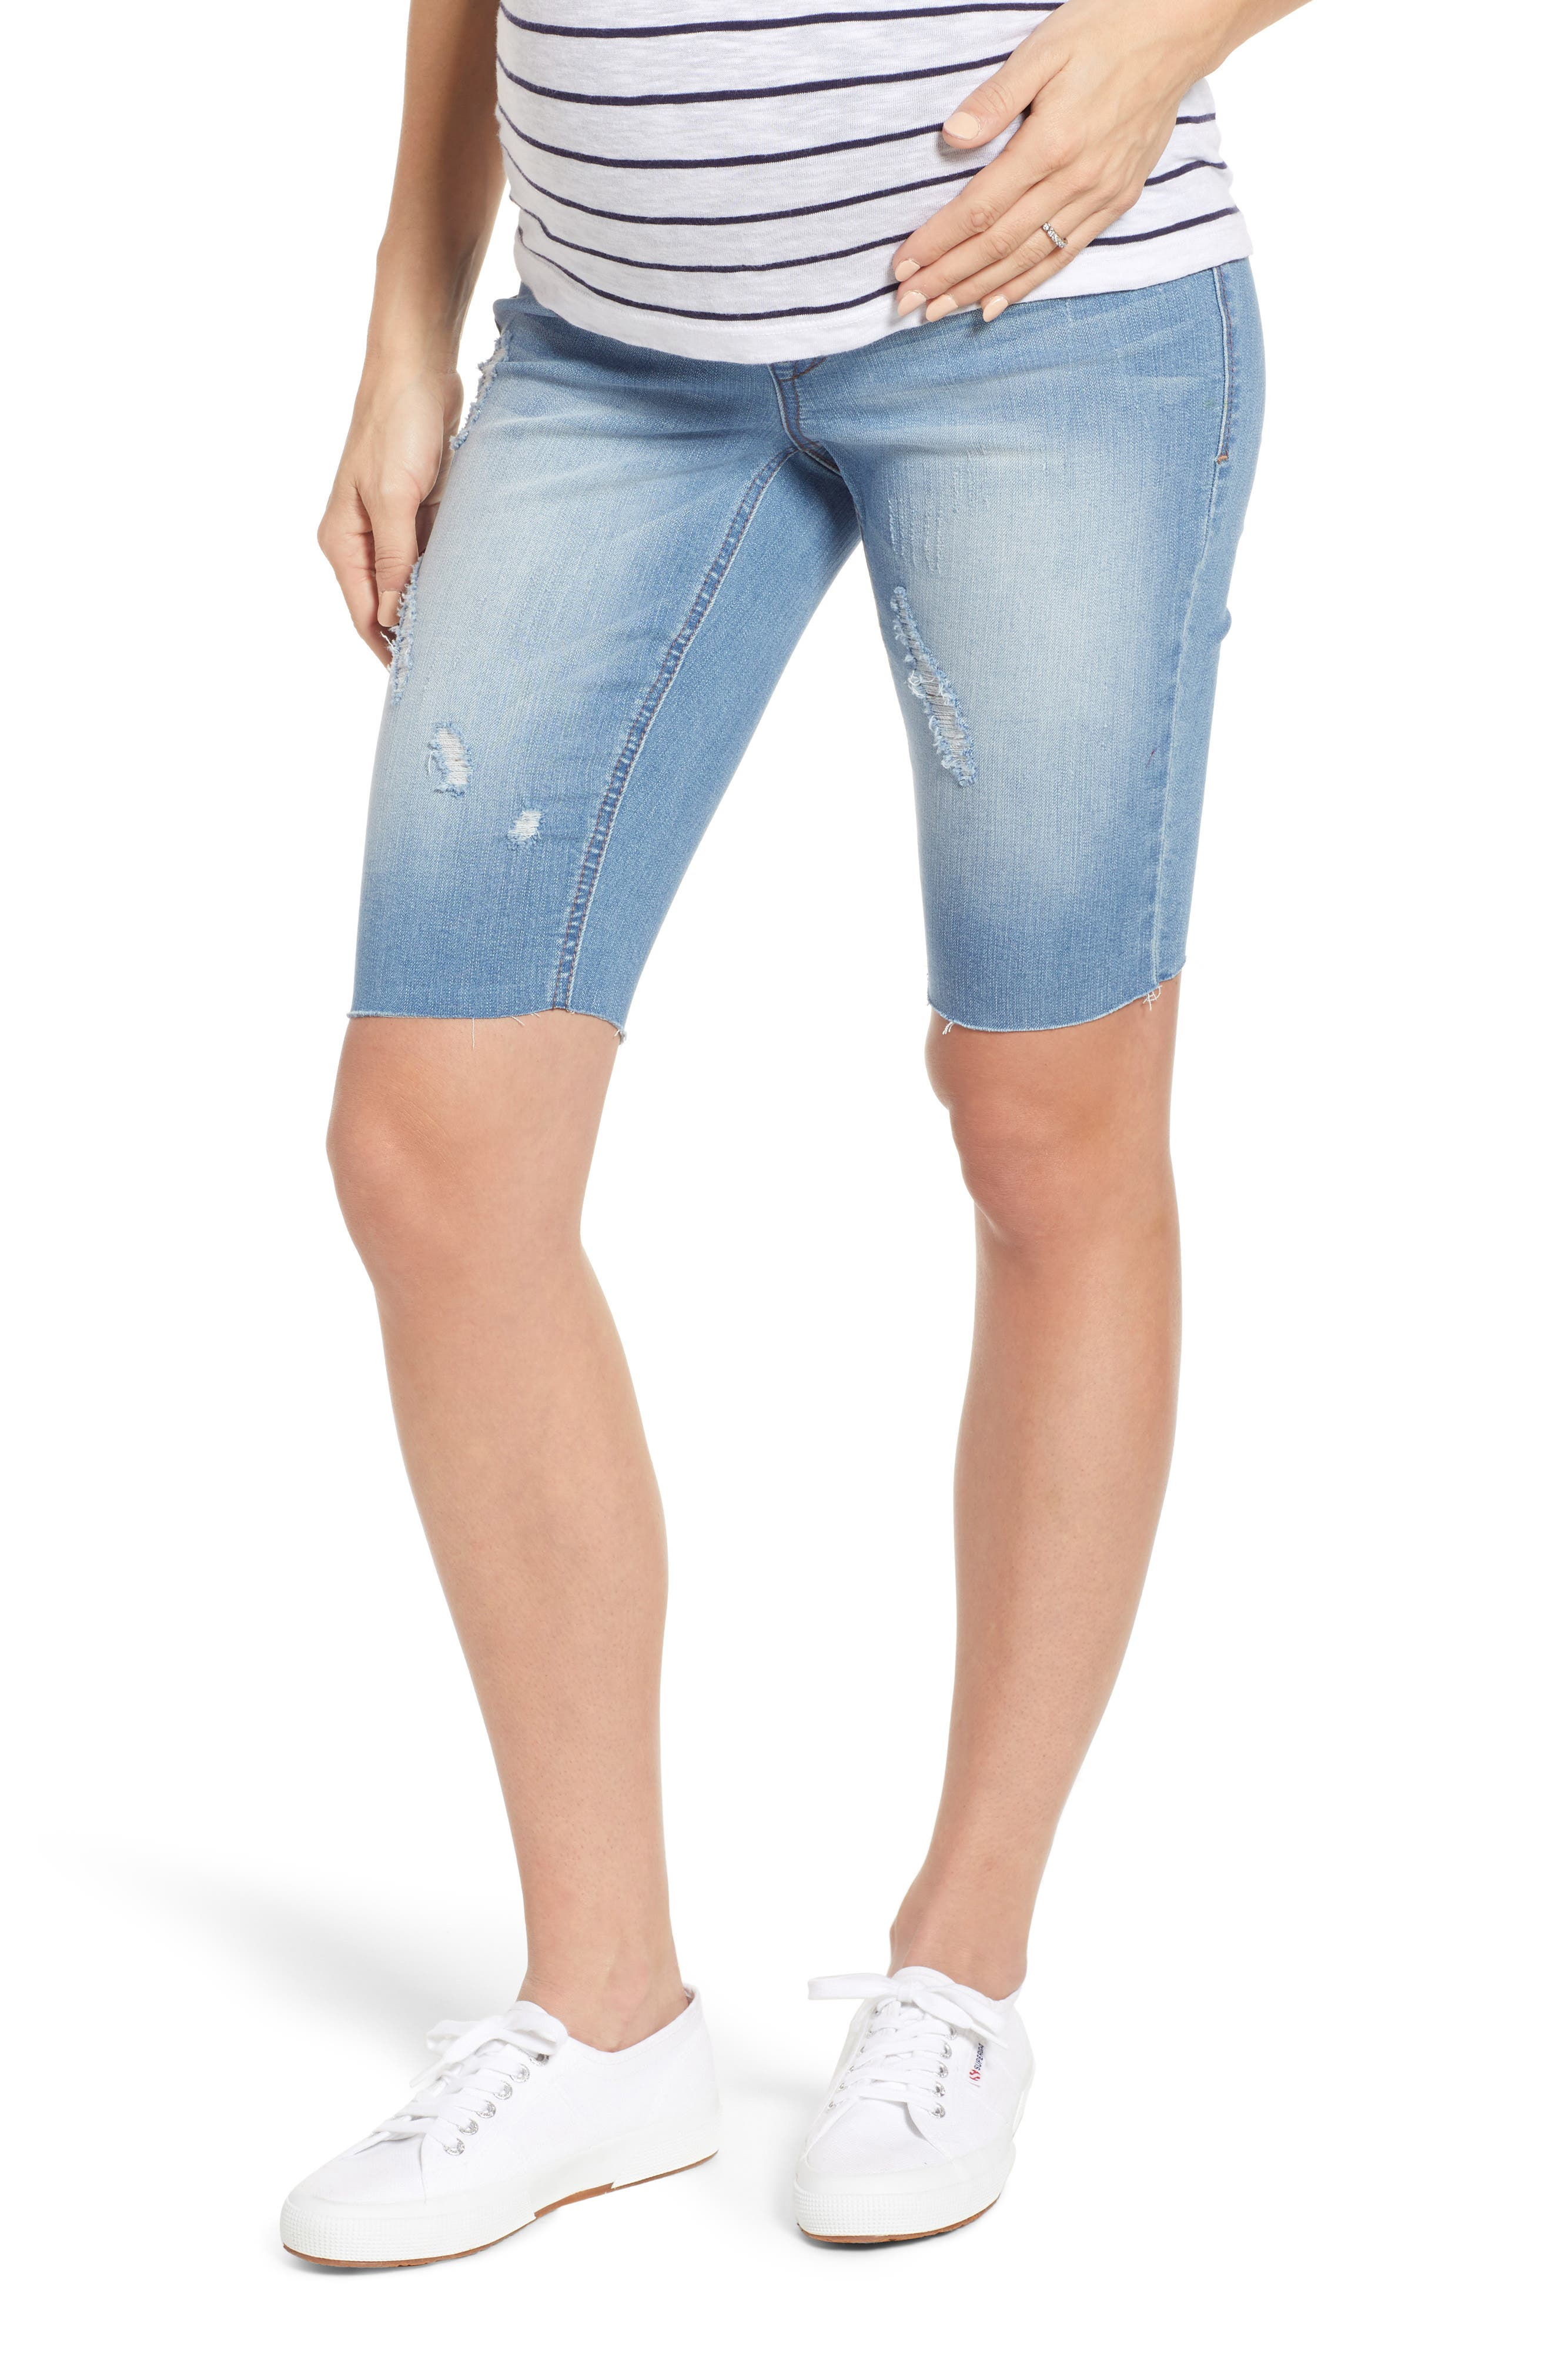 Women's 1822 Denim Maternity Biker Shorts